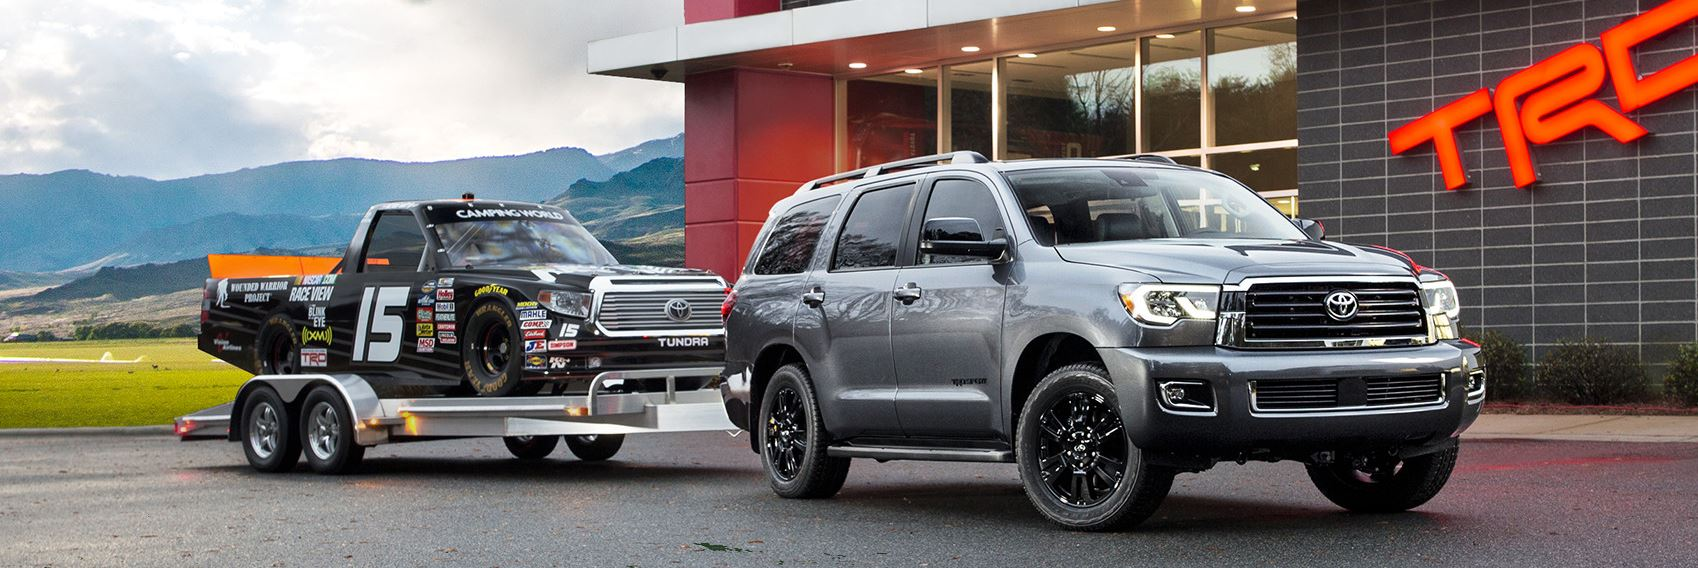 The Mighty Redwood of SUVs &#8211&#x3B; The Toyota Sequoia